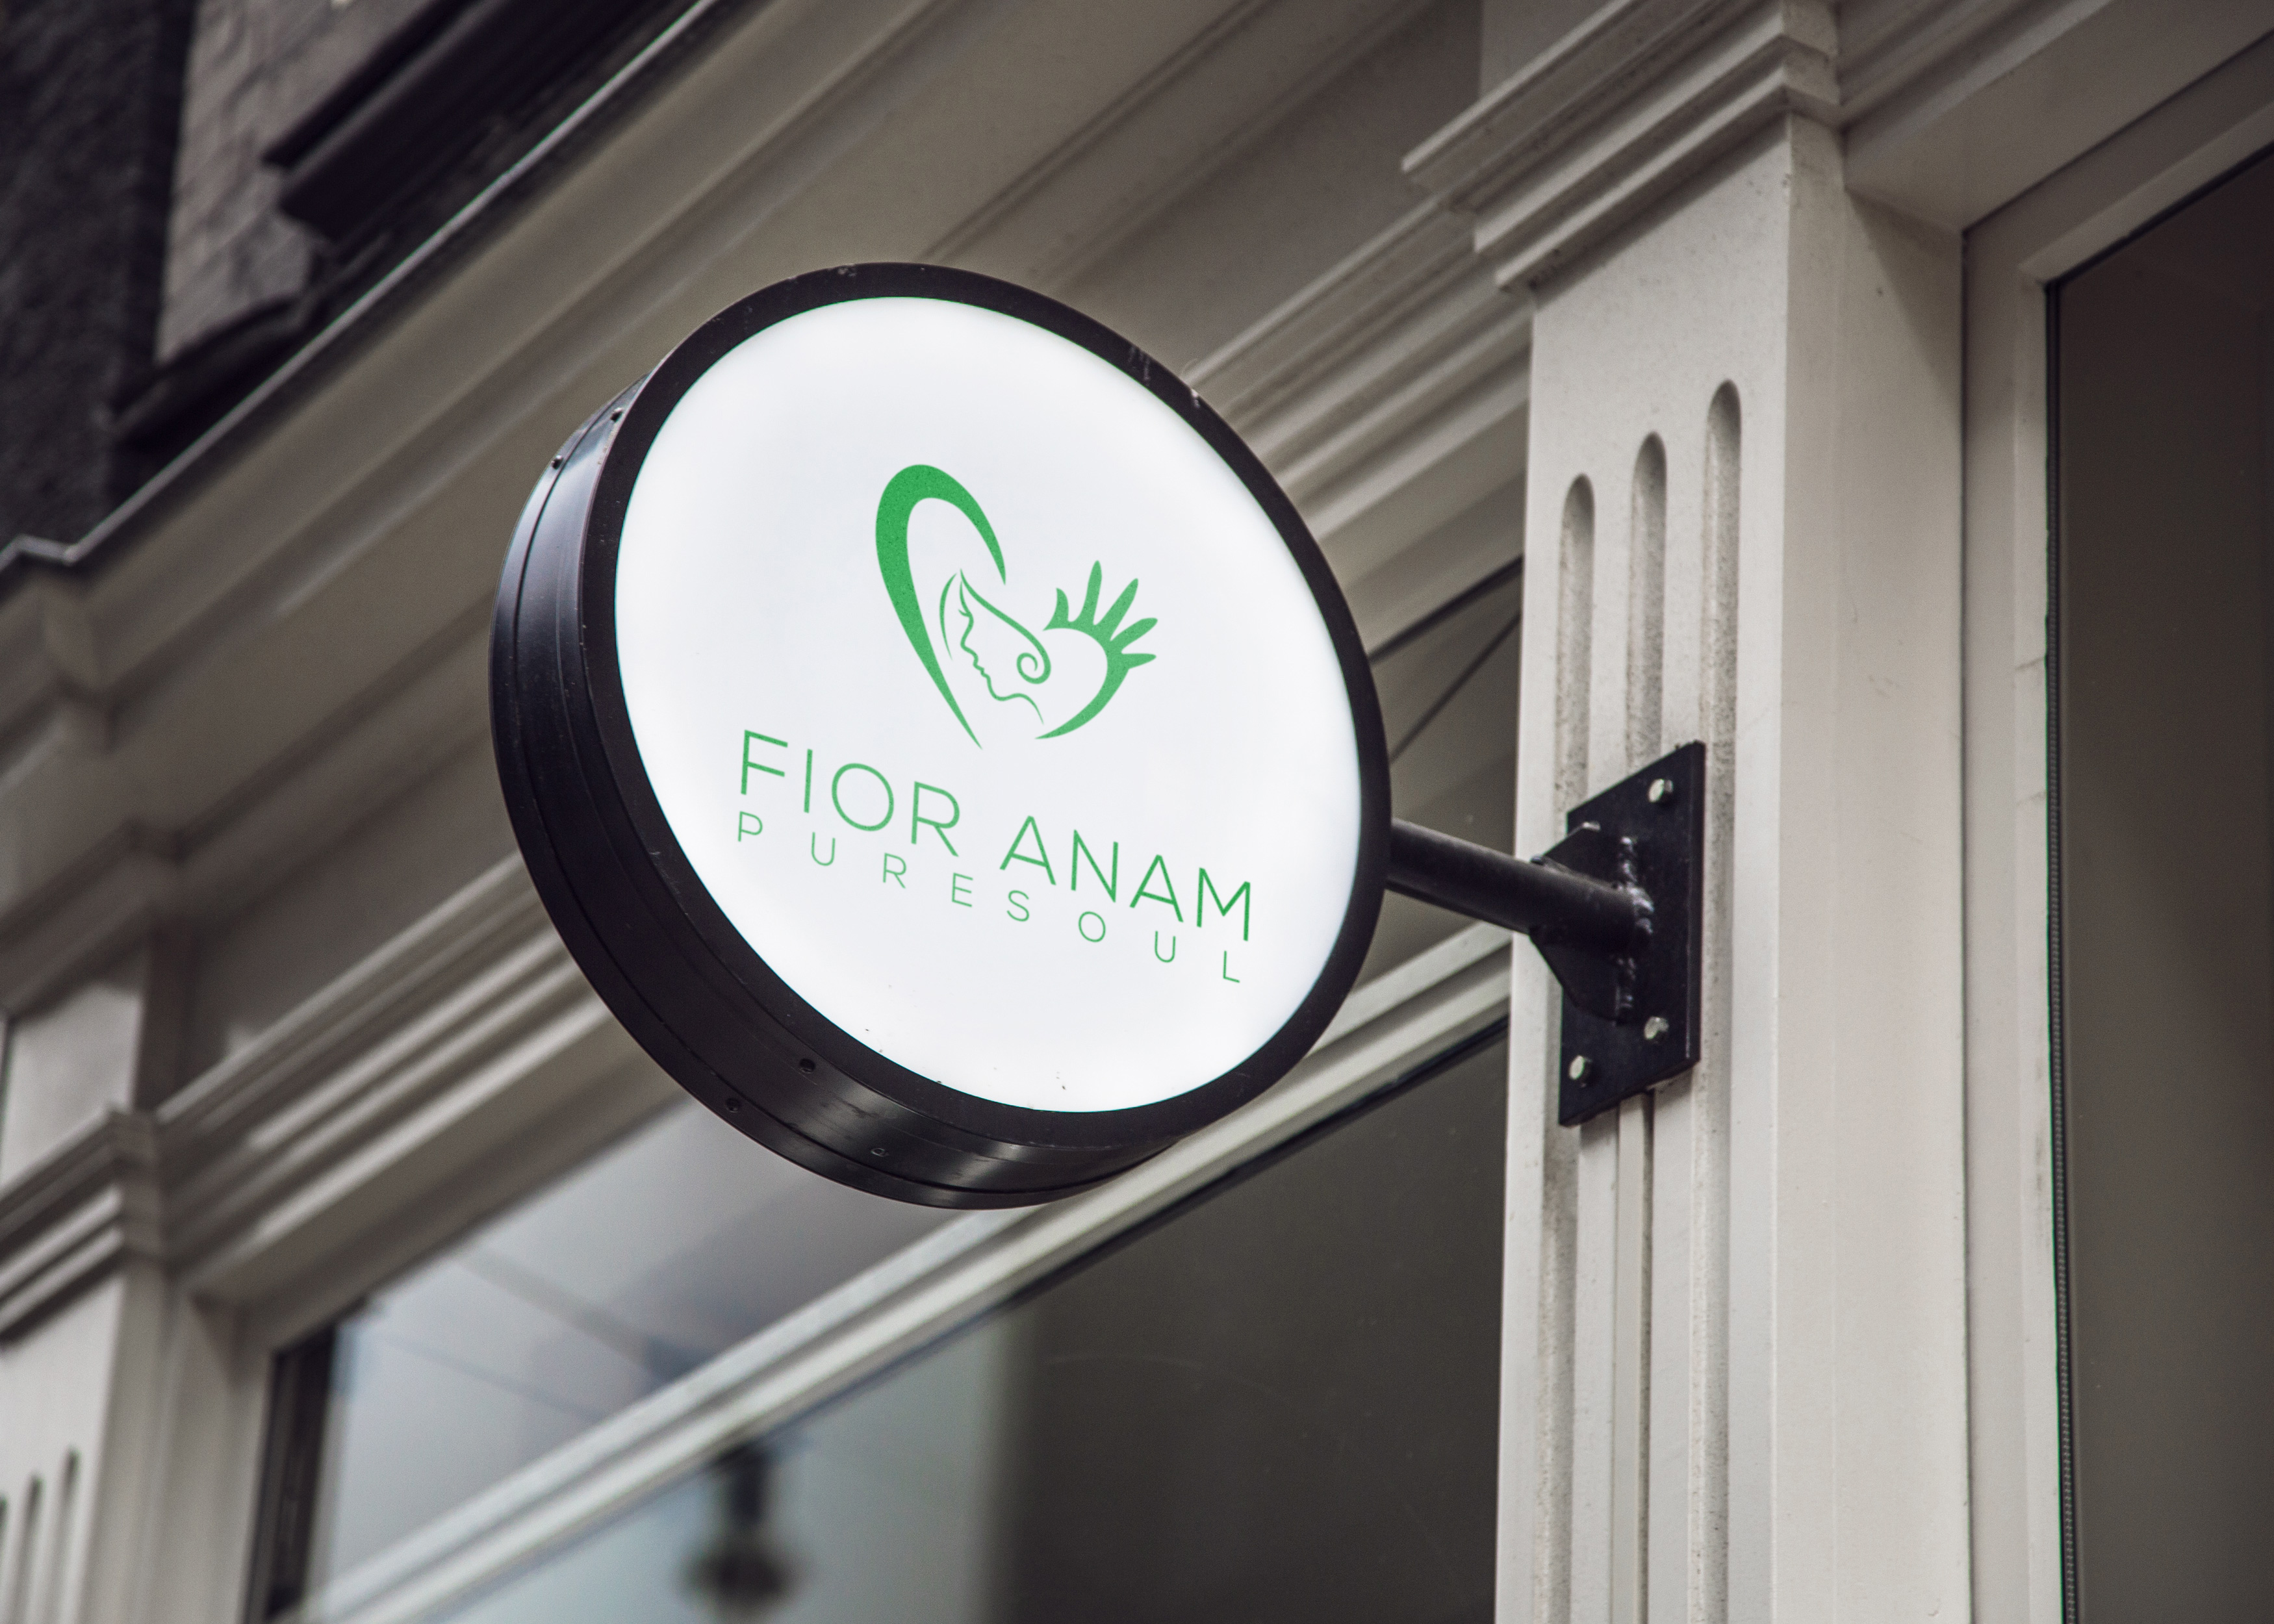 Logo Design by Robiul Robin - Entry No. 363 in the Logo Design Contest Creative Logo Design for Fior Anam.